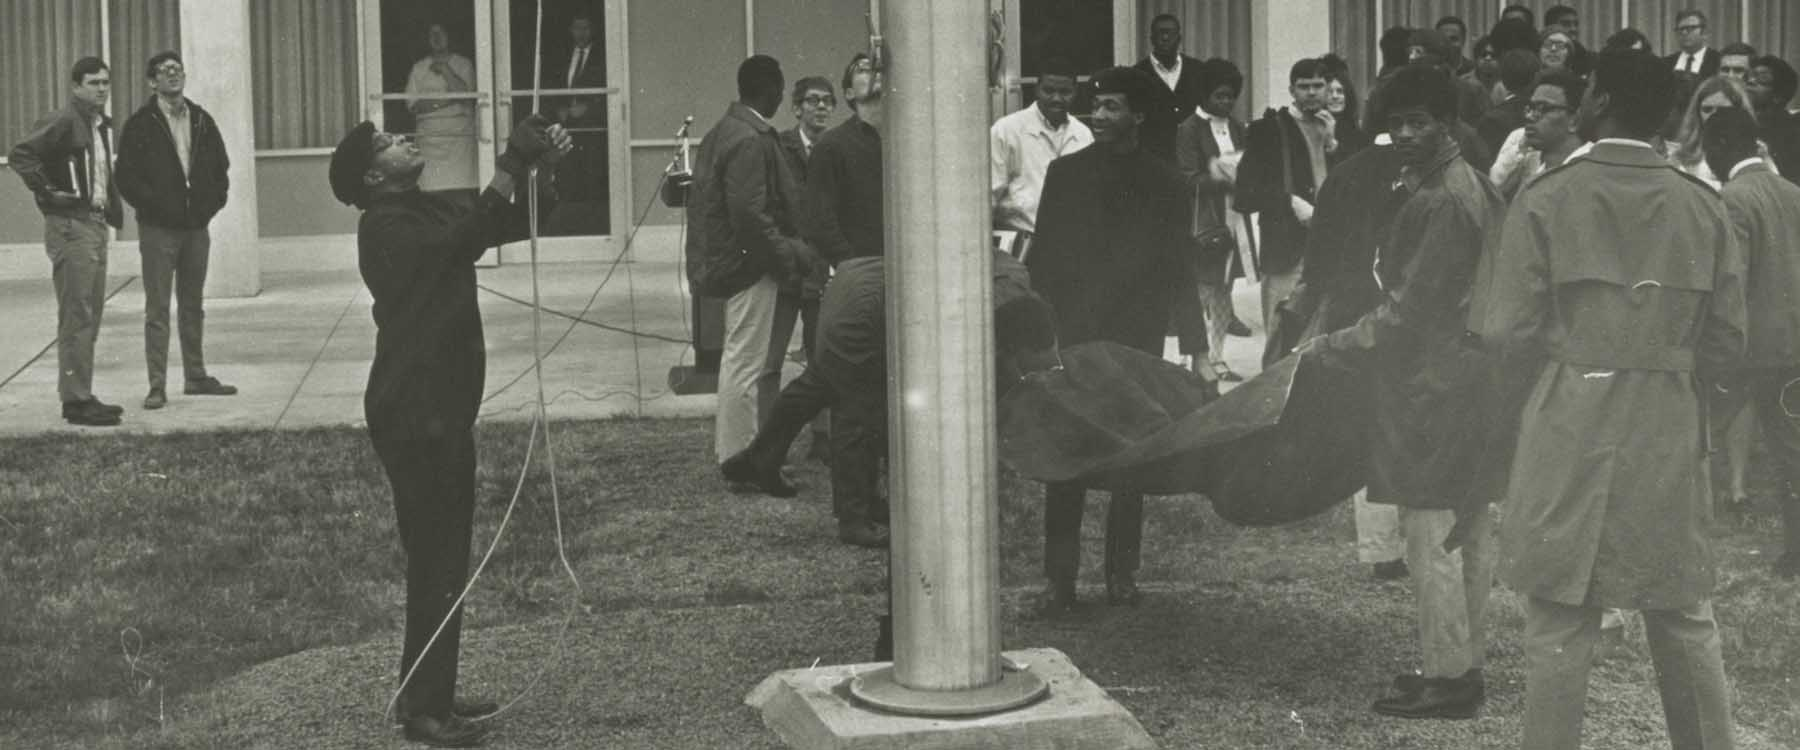 The origins and legacy of the Black Student Union